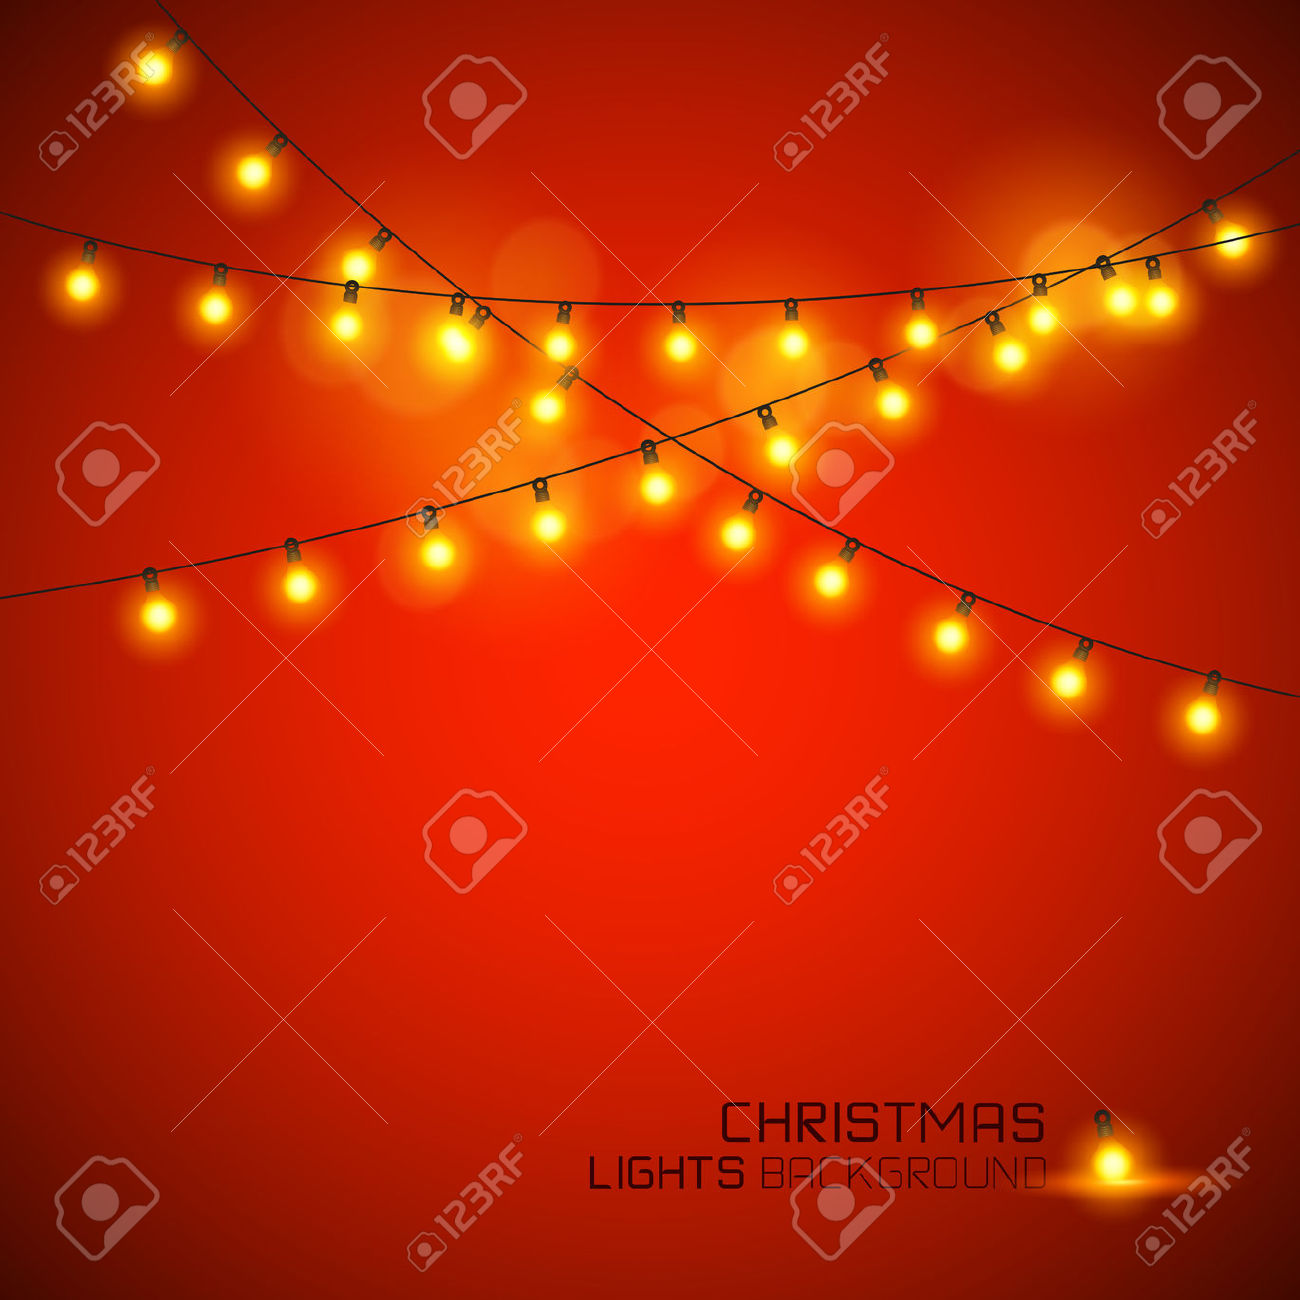 Christmas led lights clipart.